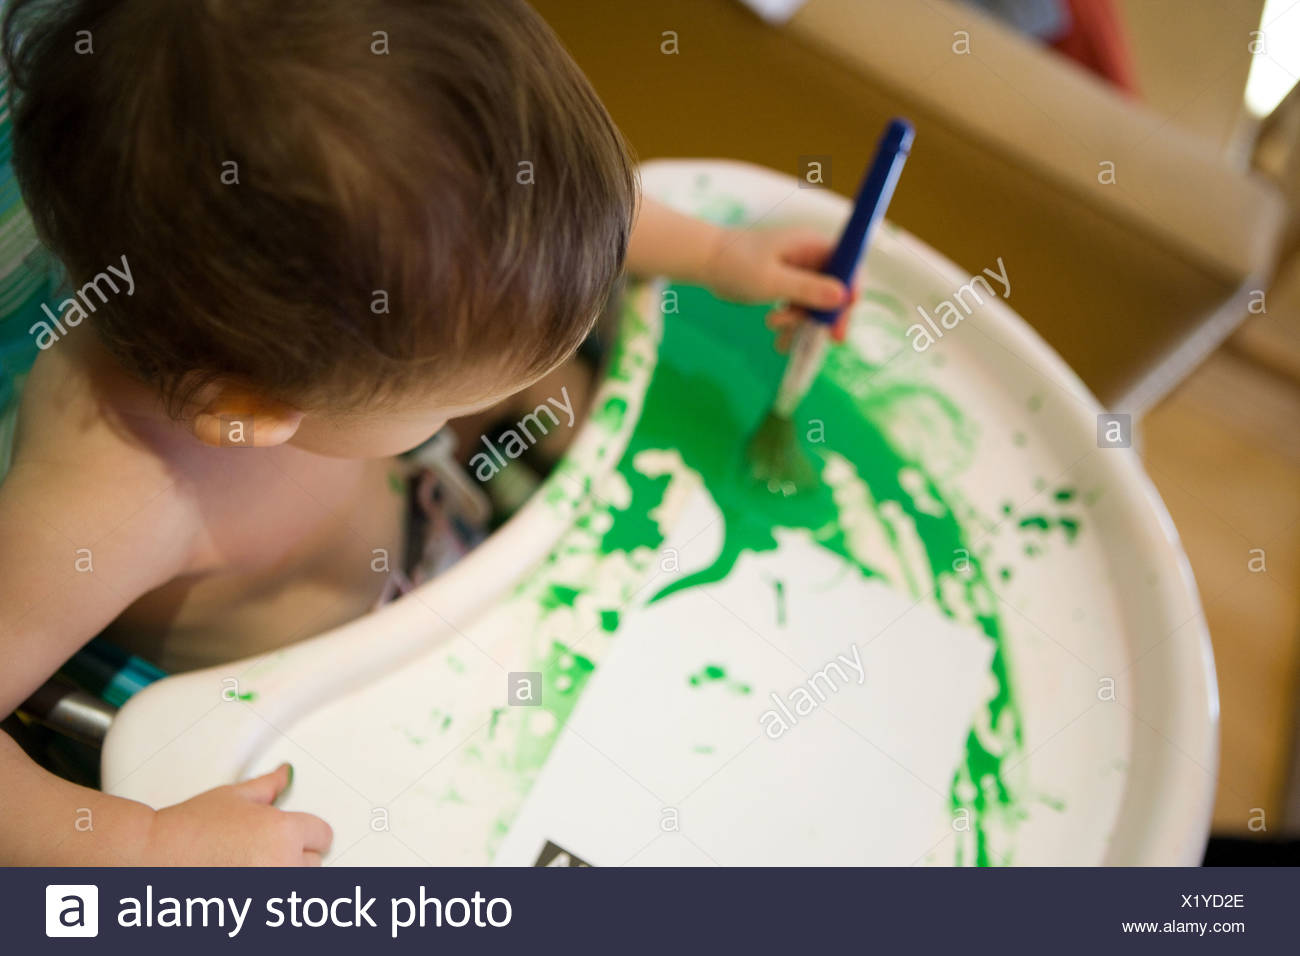 Baby boy in high chair with green paint - Stock Image